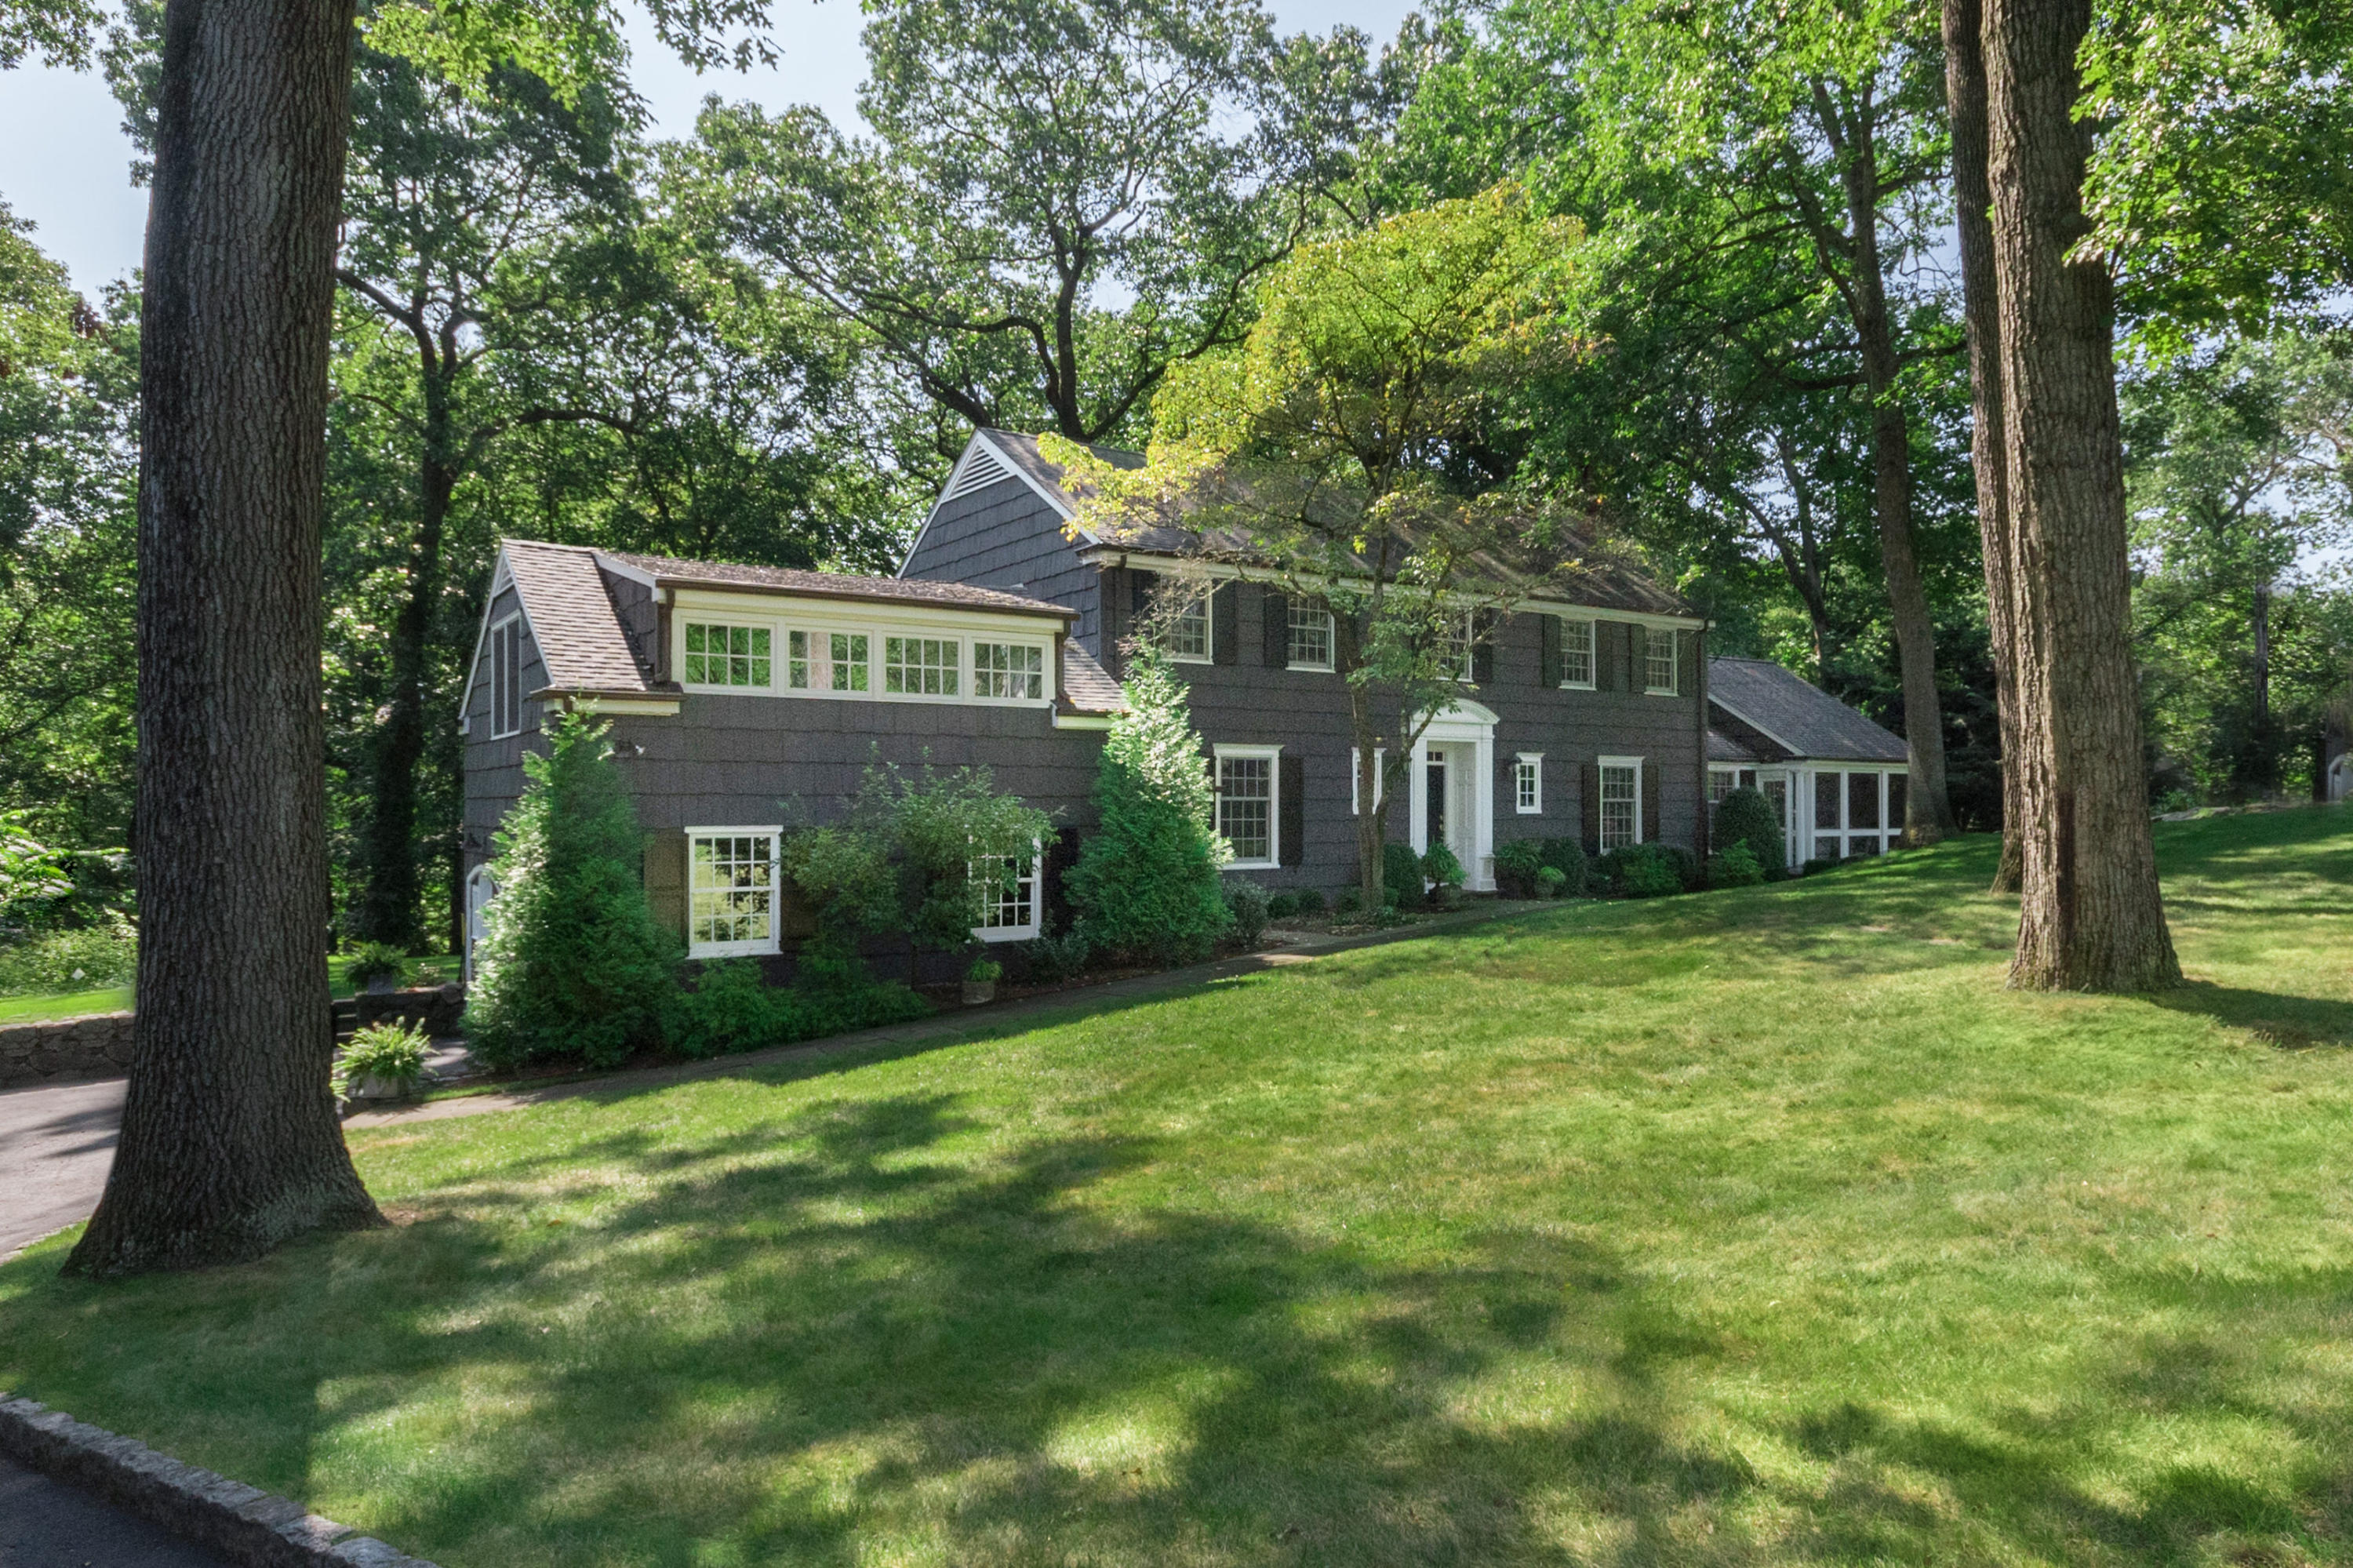 22 WINDING LANE, DARIEN, CT 06820